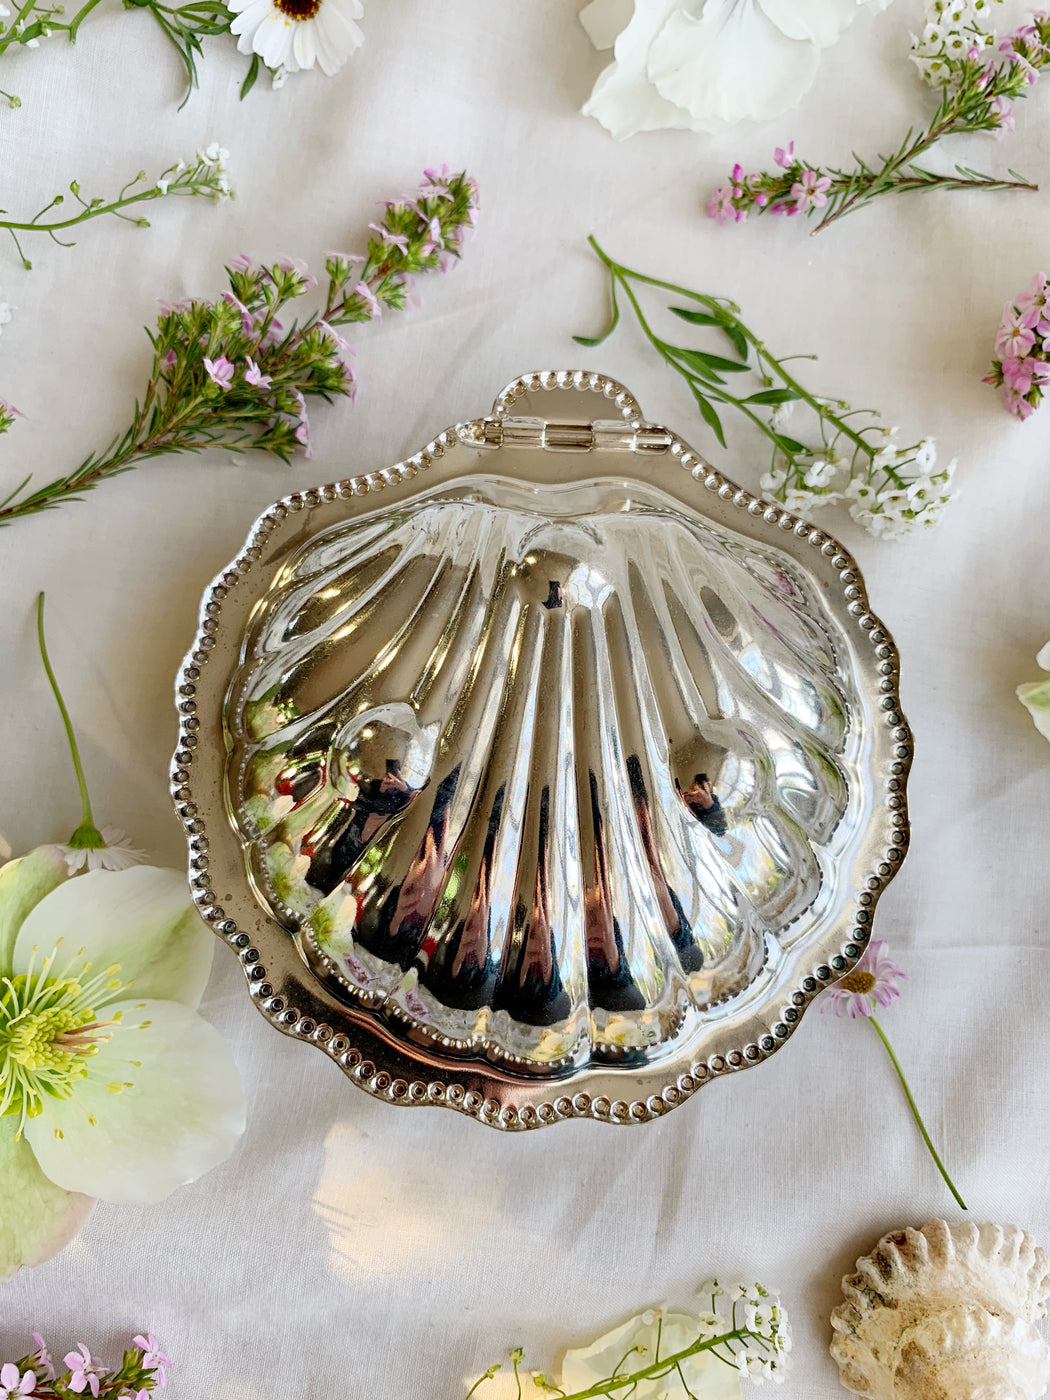 Silver Plated Clam Shell Butter Dish